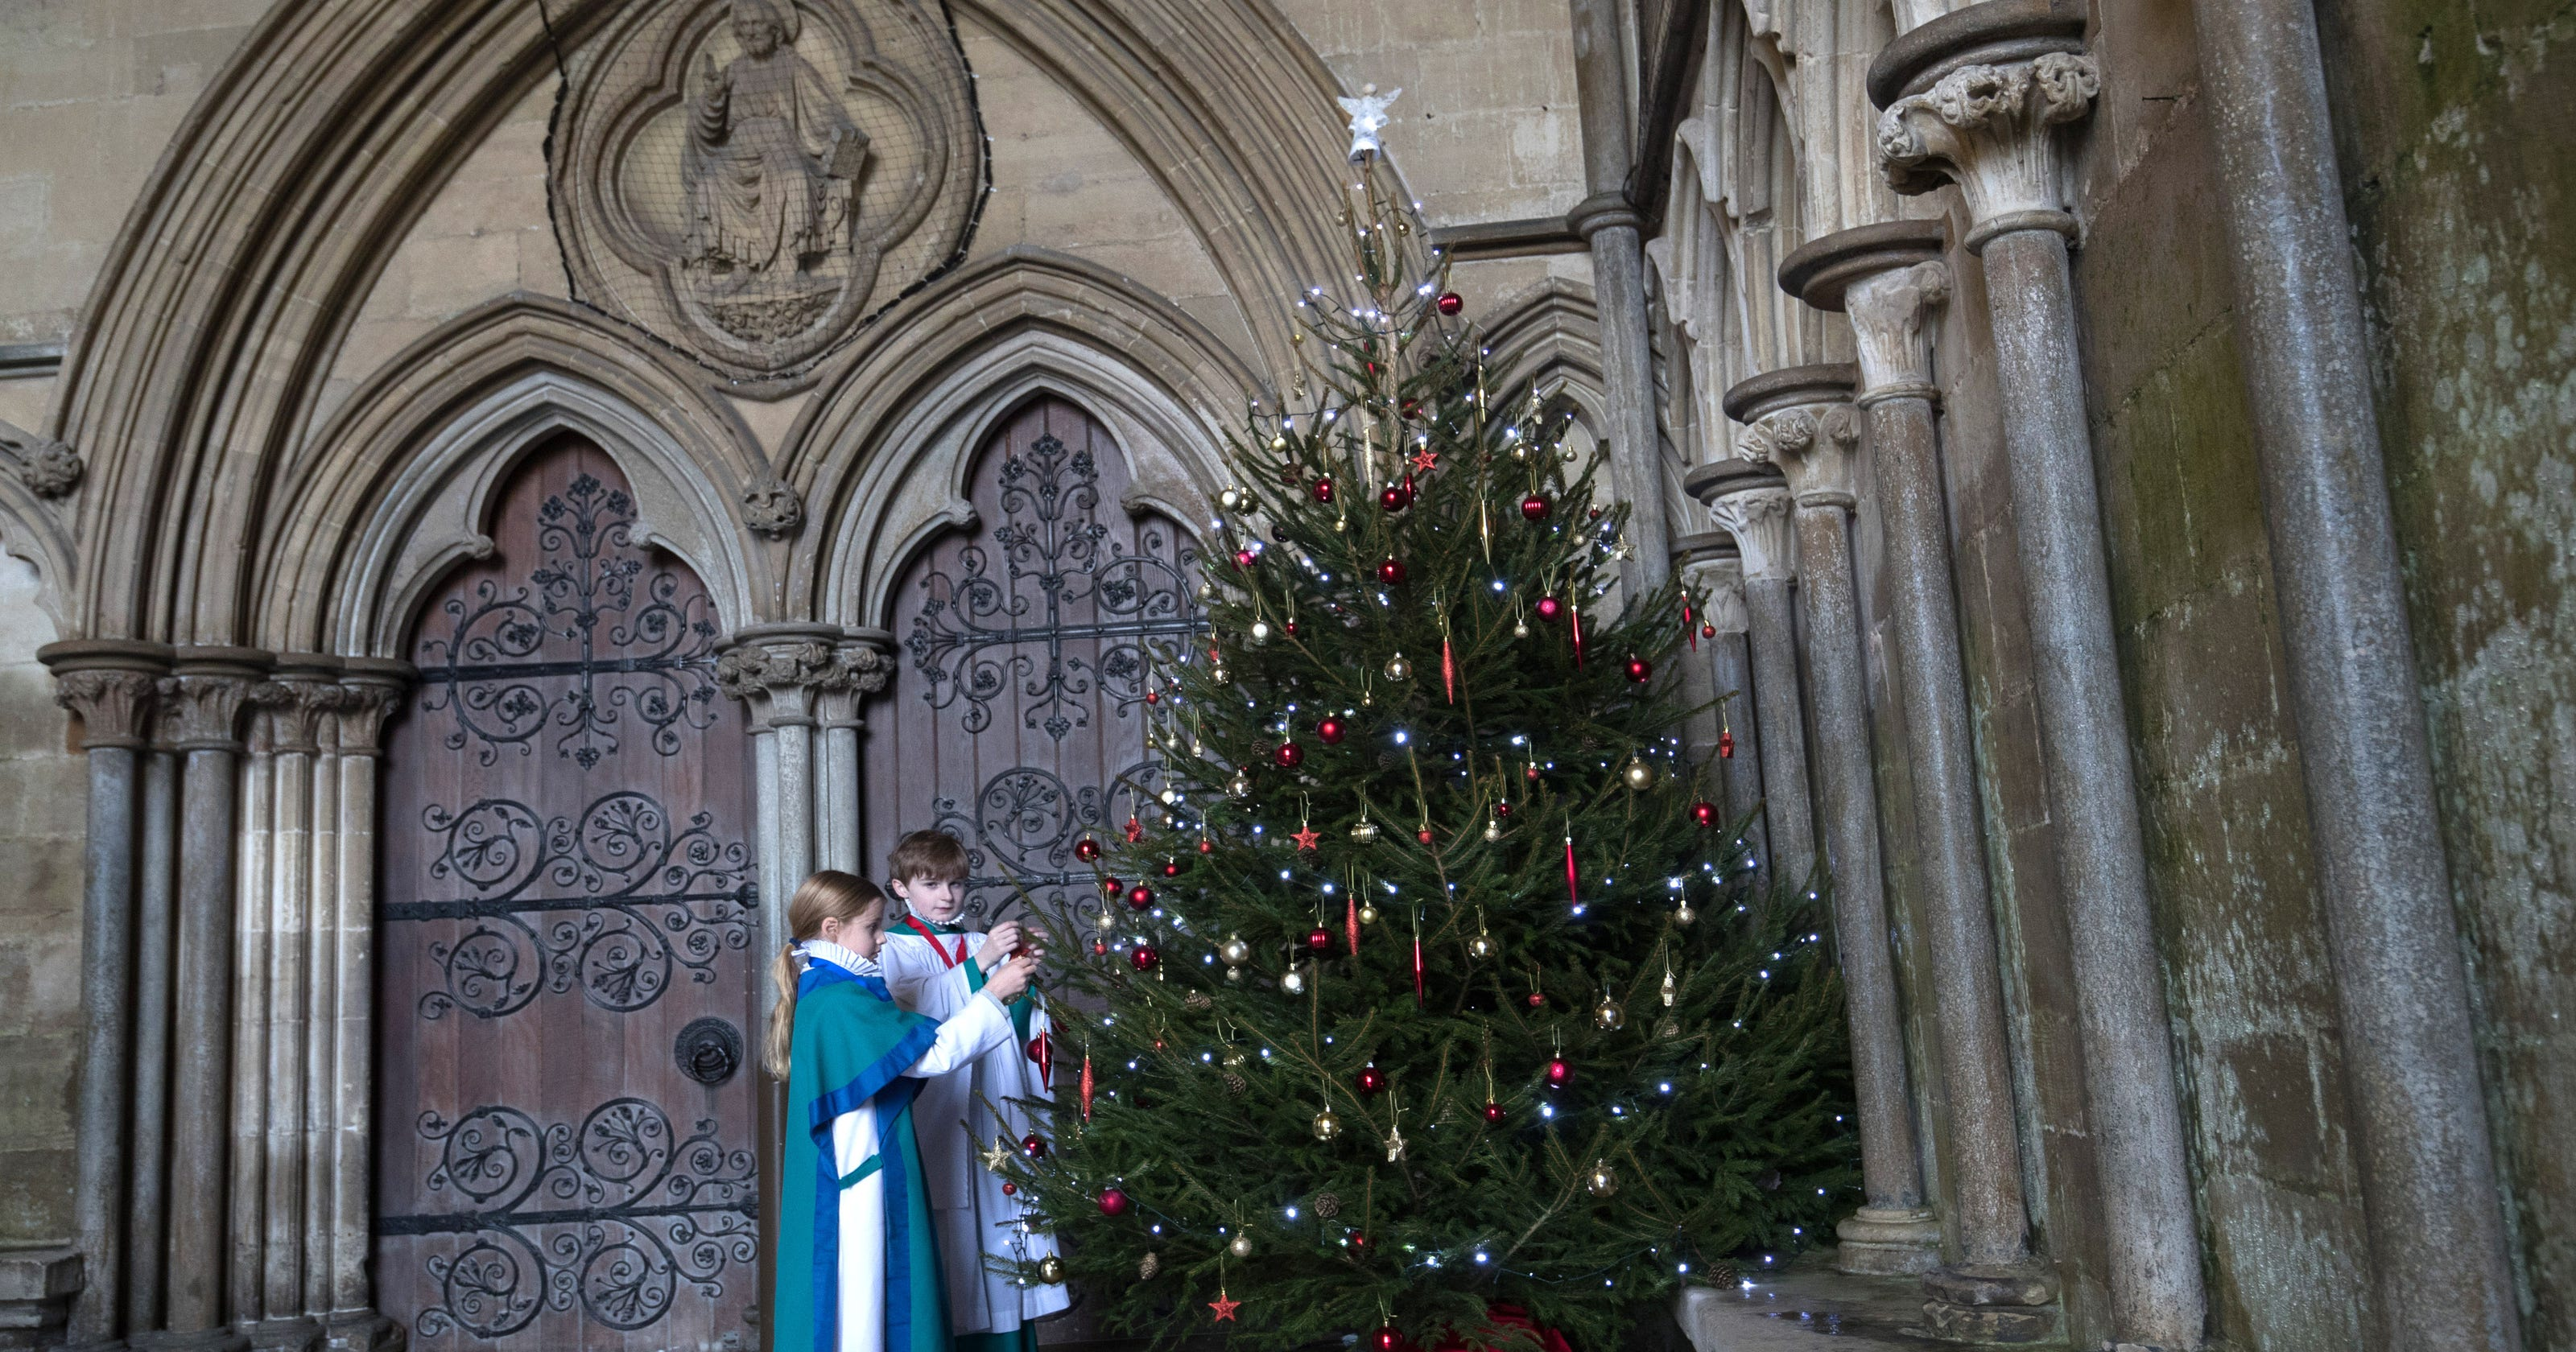 Christmas trees: Are they religious?